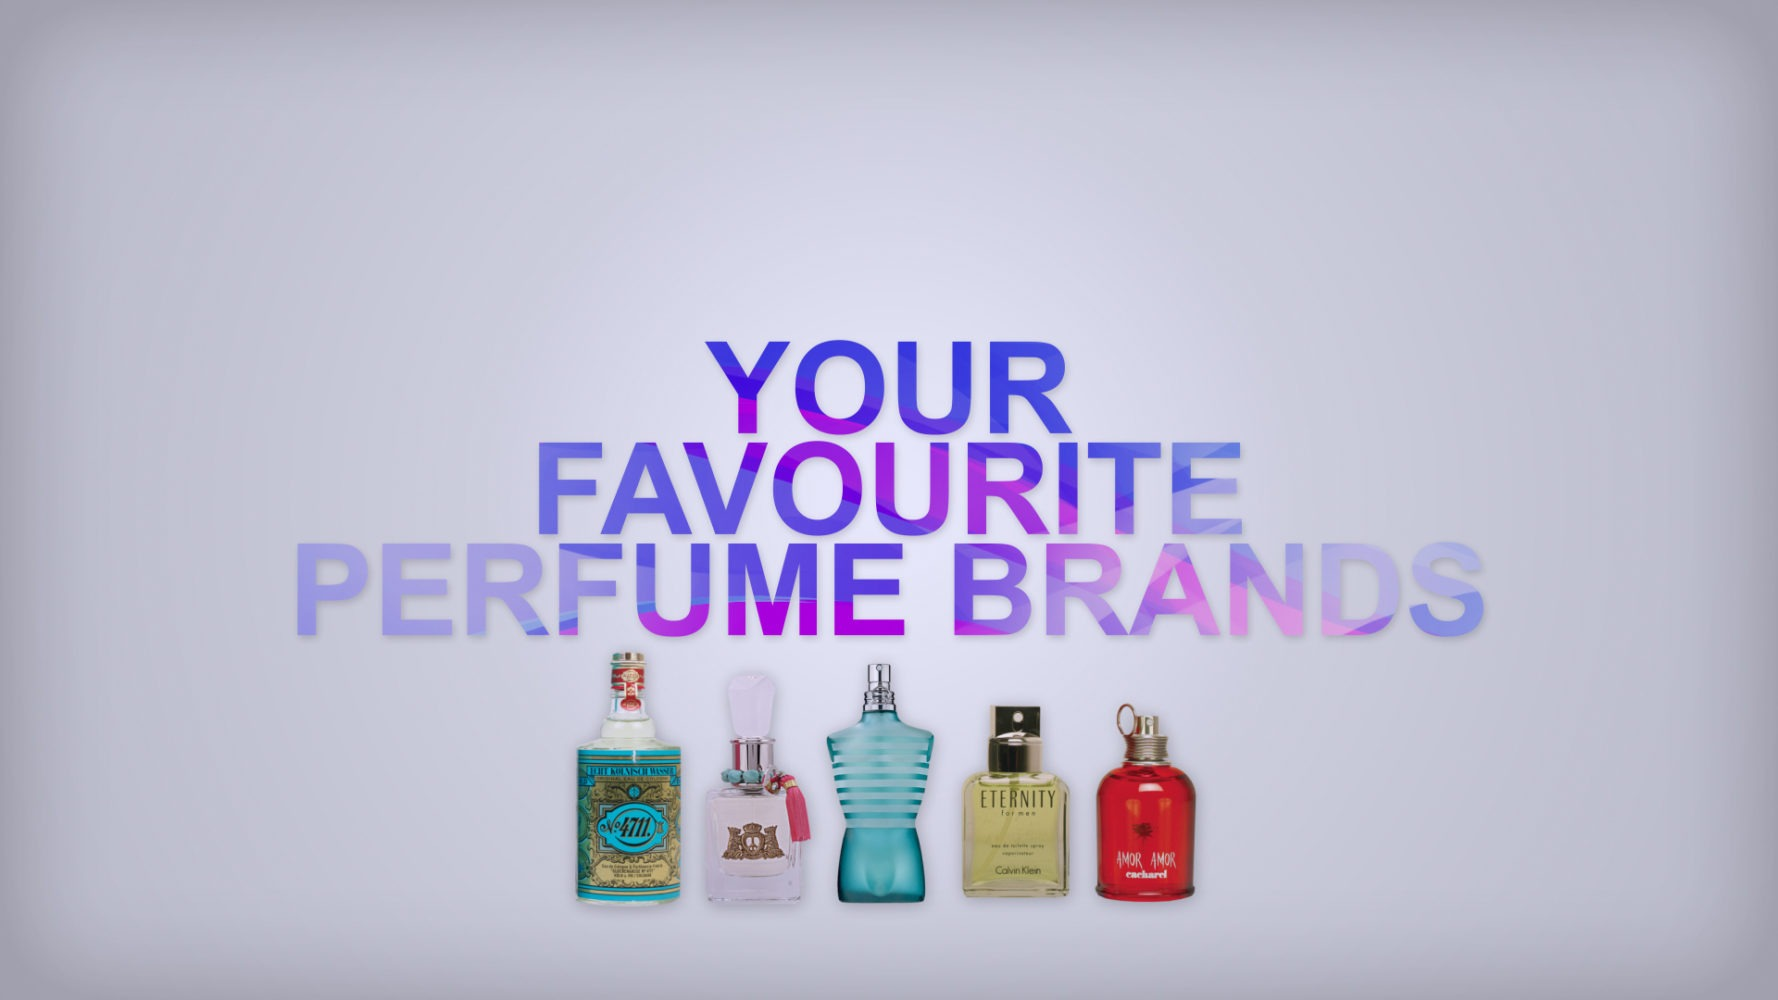 perfumedepot 30″ TV commercial